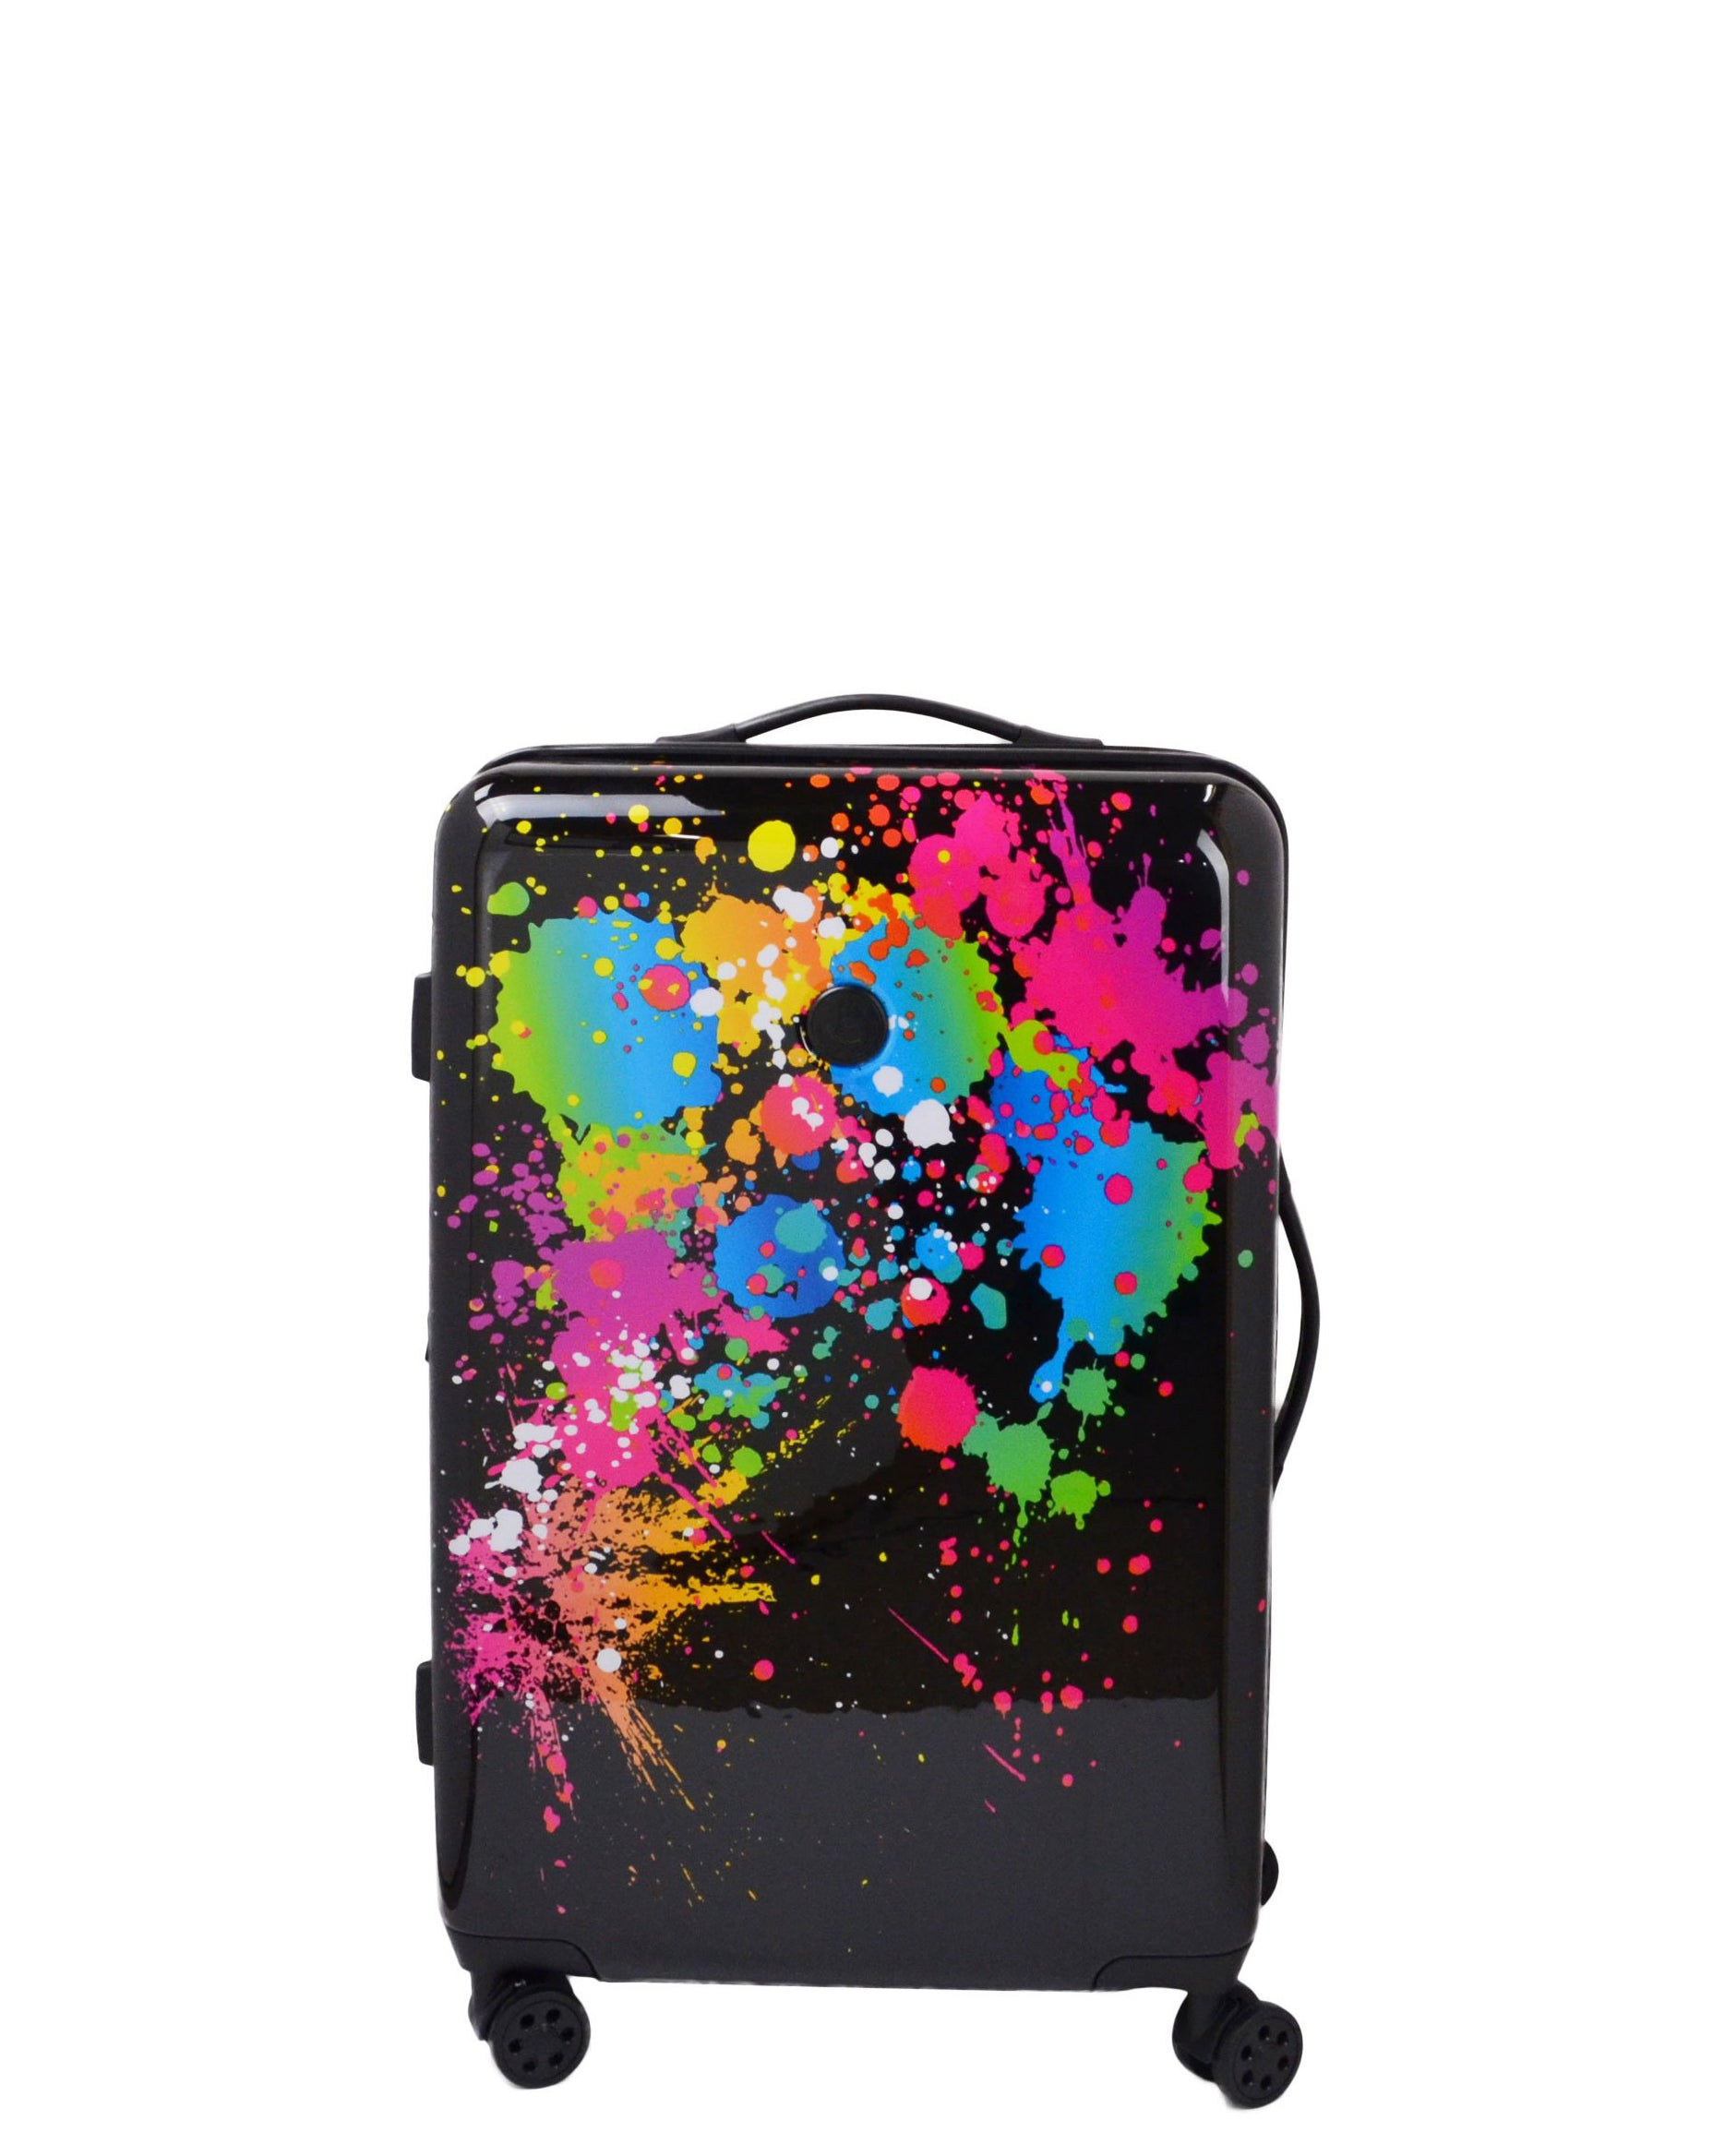 "Bursts 26"" Hardside Spinner Luggage - Multi"